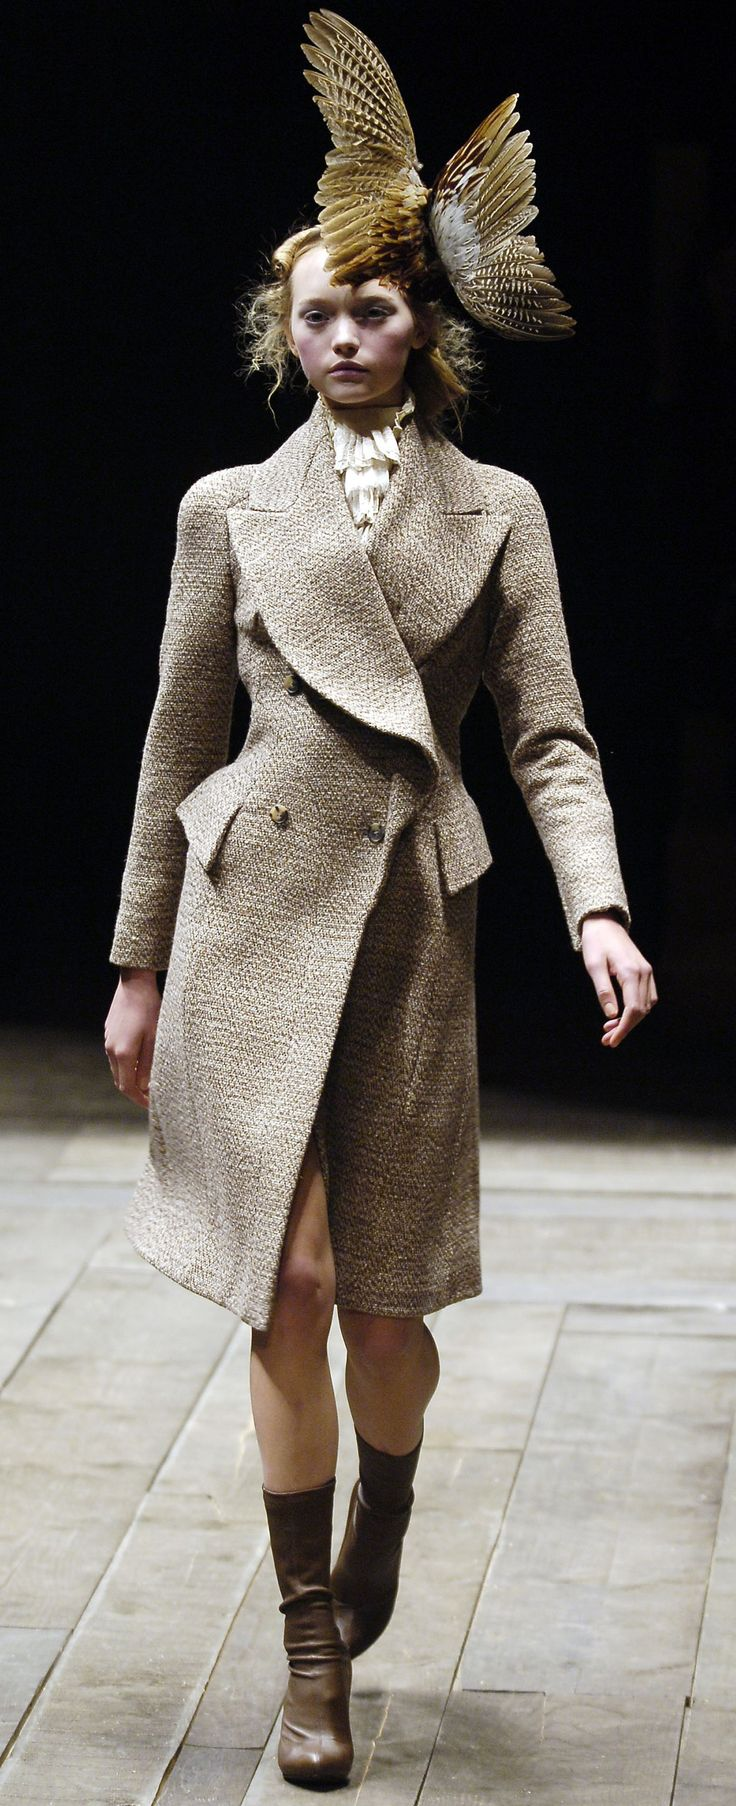 84 best images about alexander mcqueen on pinterest for Mac alexander mcqueen